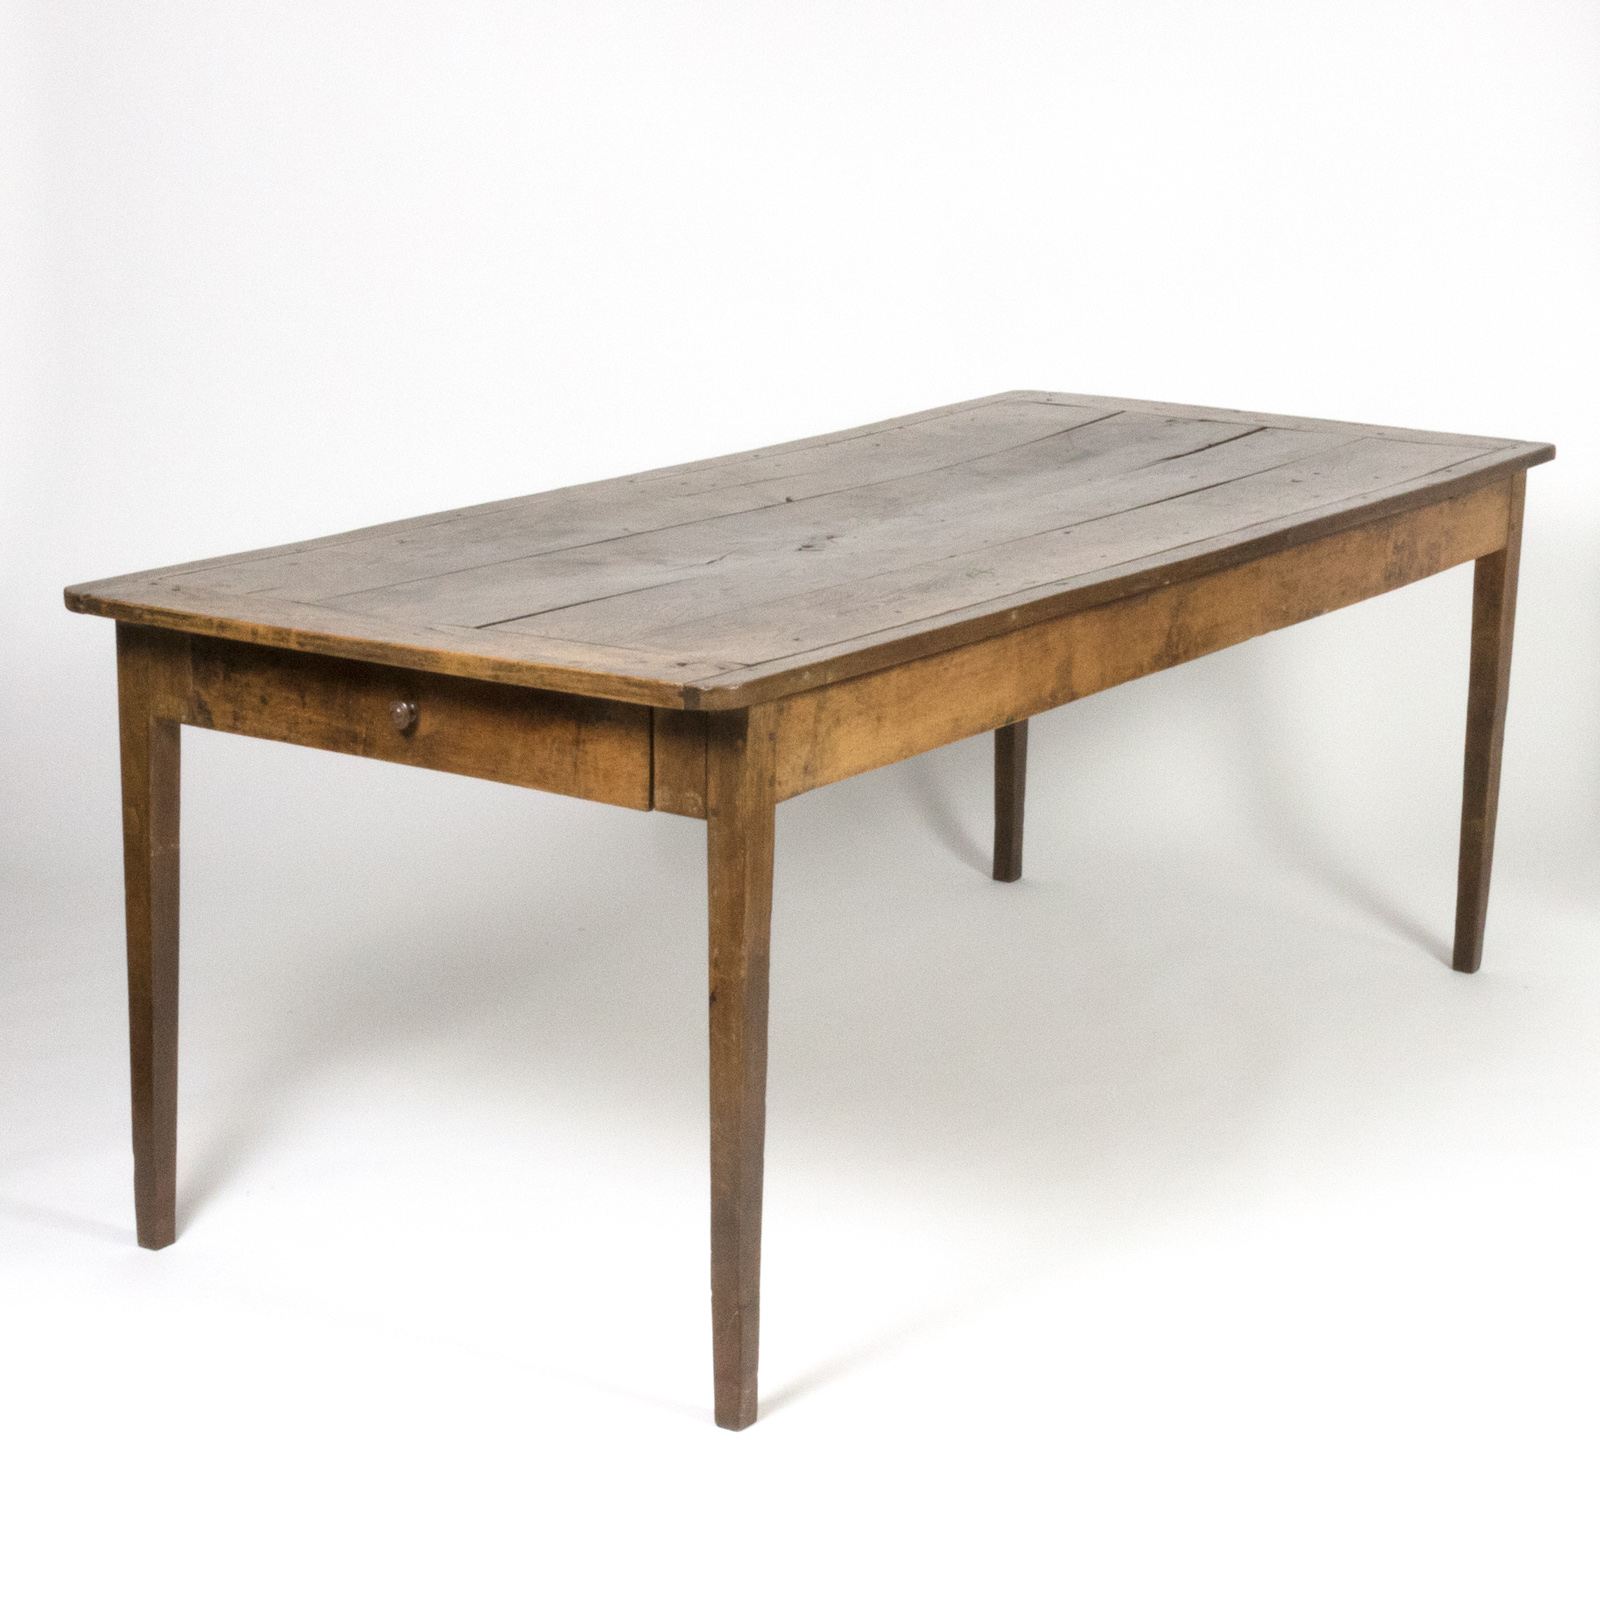 Farmhouse Kitchen Table With Drawers: A Rare Elmwood Vintage Farmhouse Table, 19th C. 415 355-1690